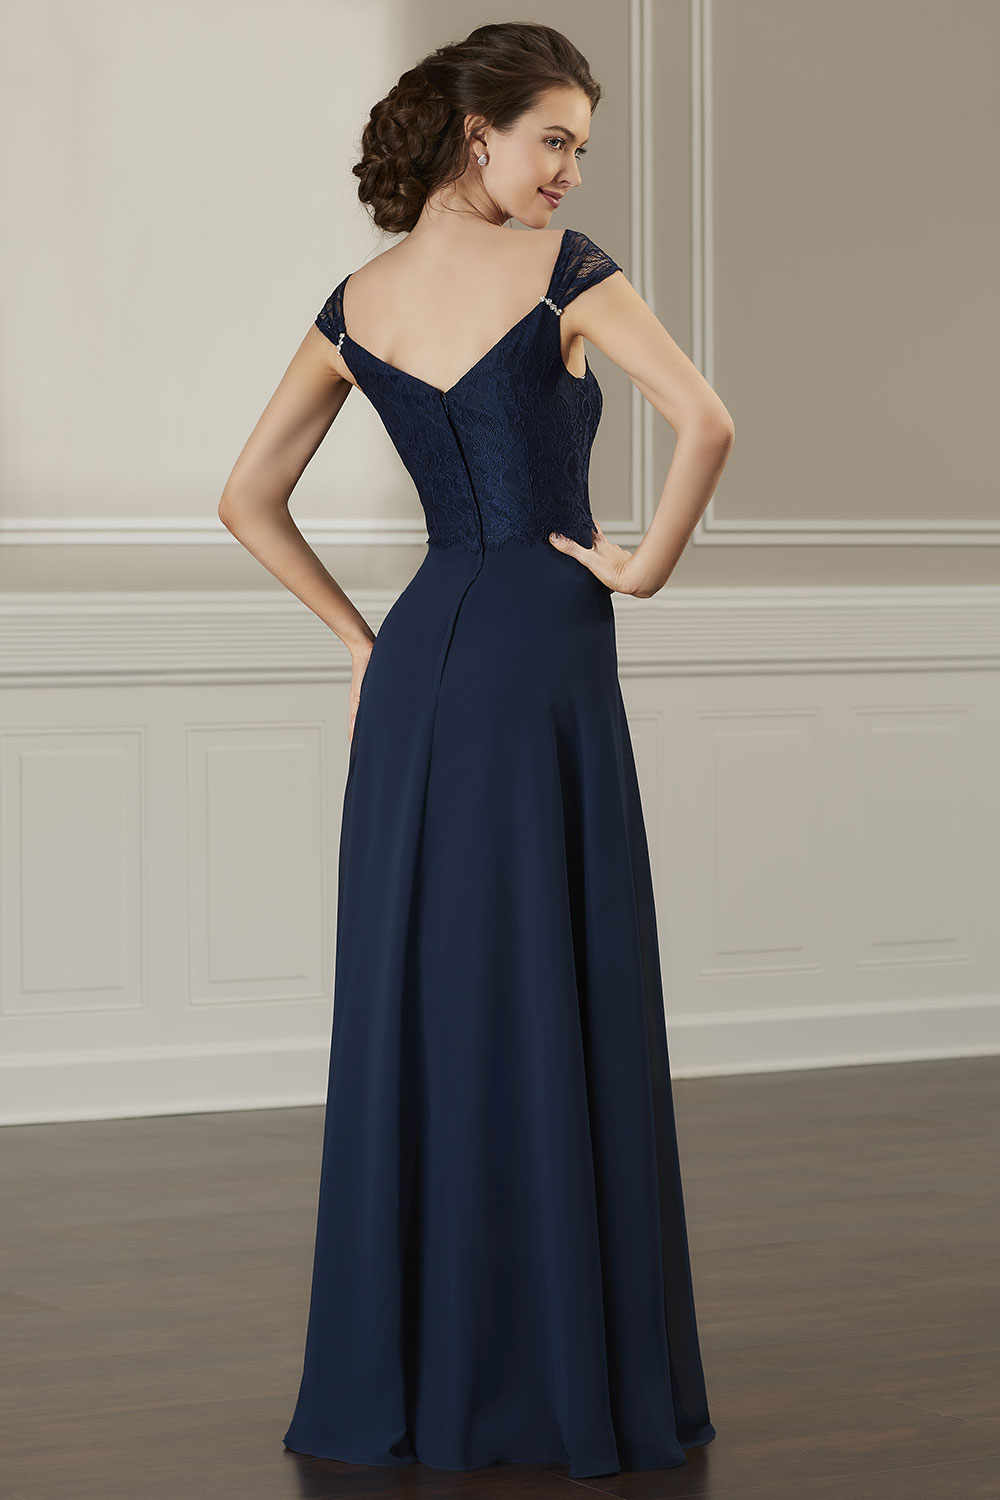 bridesmaid-dresses-jacquelin-bridals-canada-26843